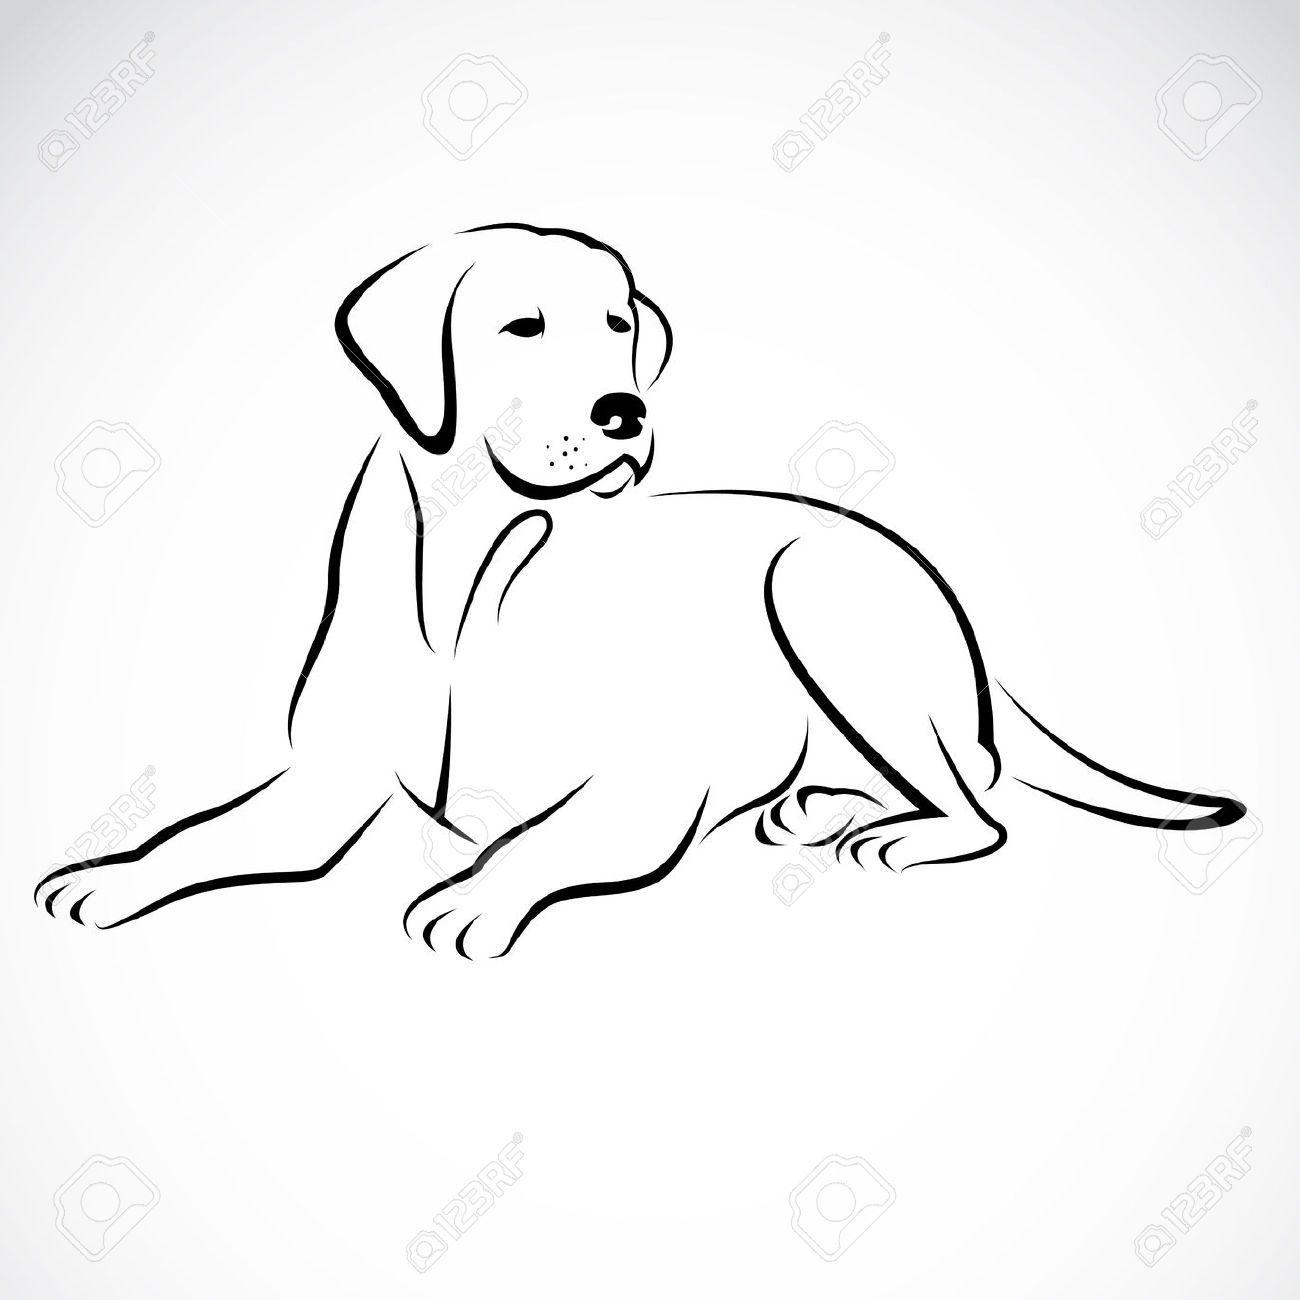 Stock vector tats animal drawings dog line drawing dog silhouette